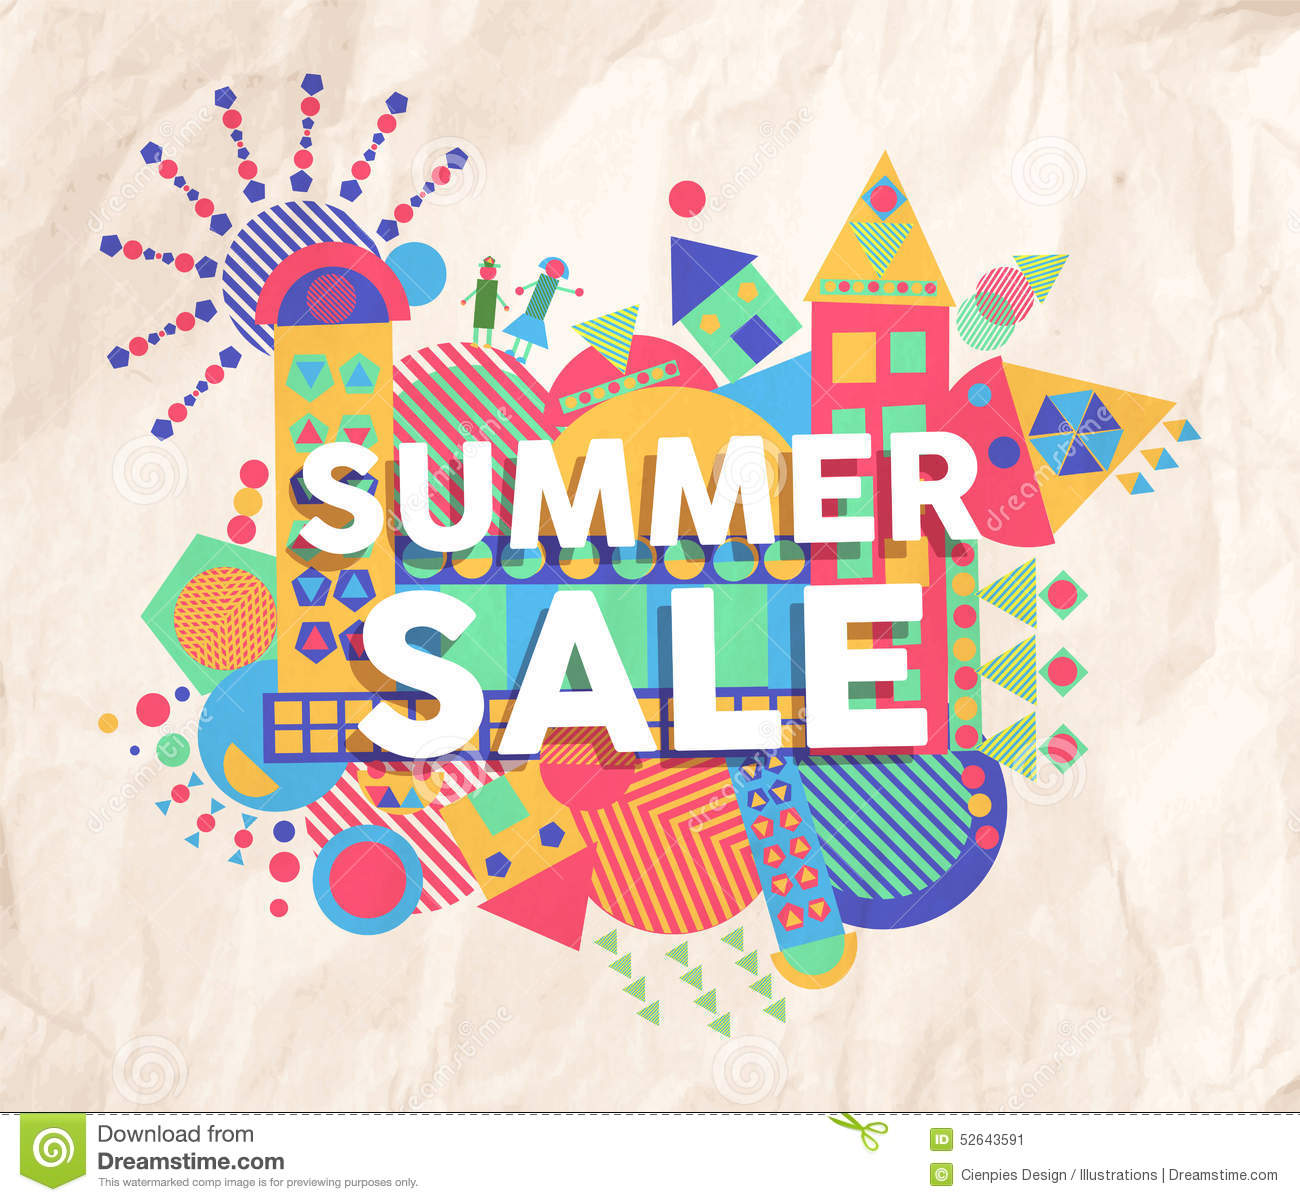 Quote poster design inspiration - Summer Sale Quote Poster Design Stock Image